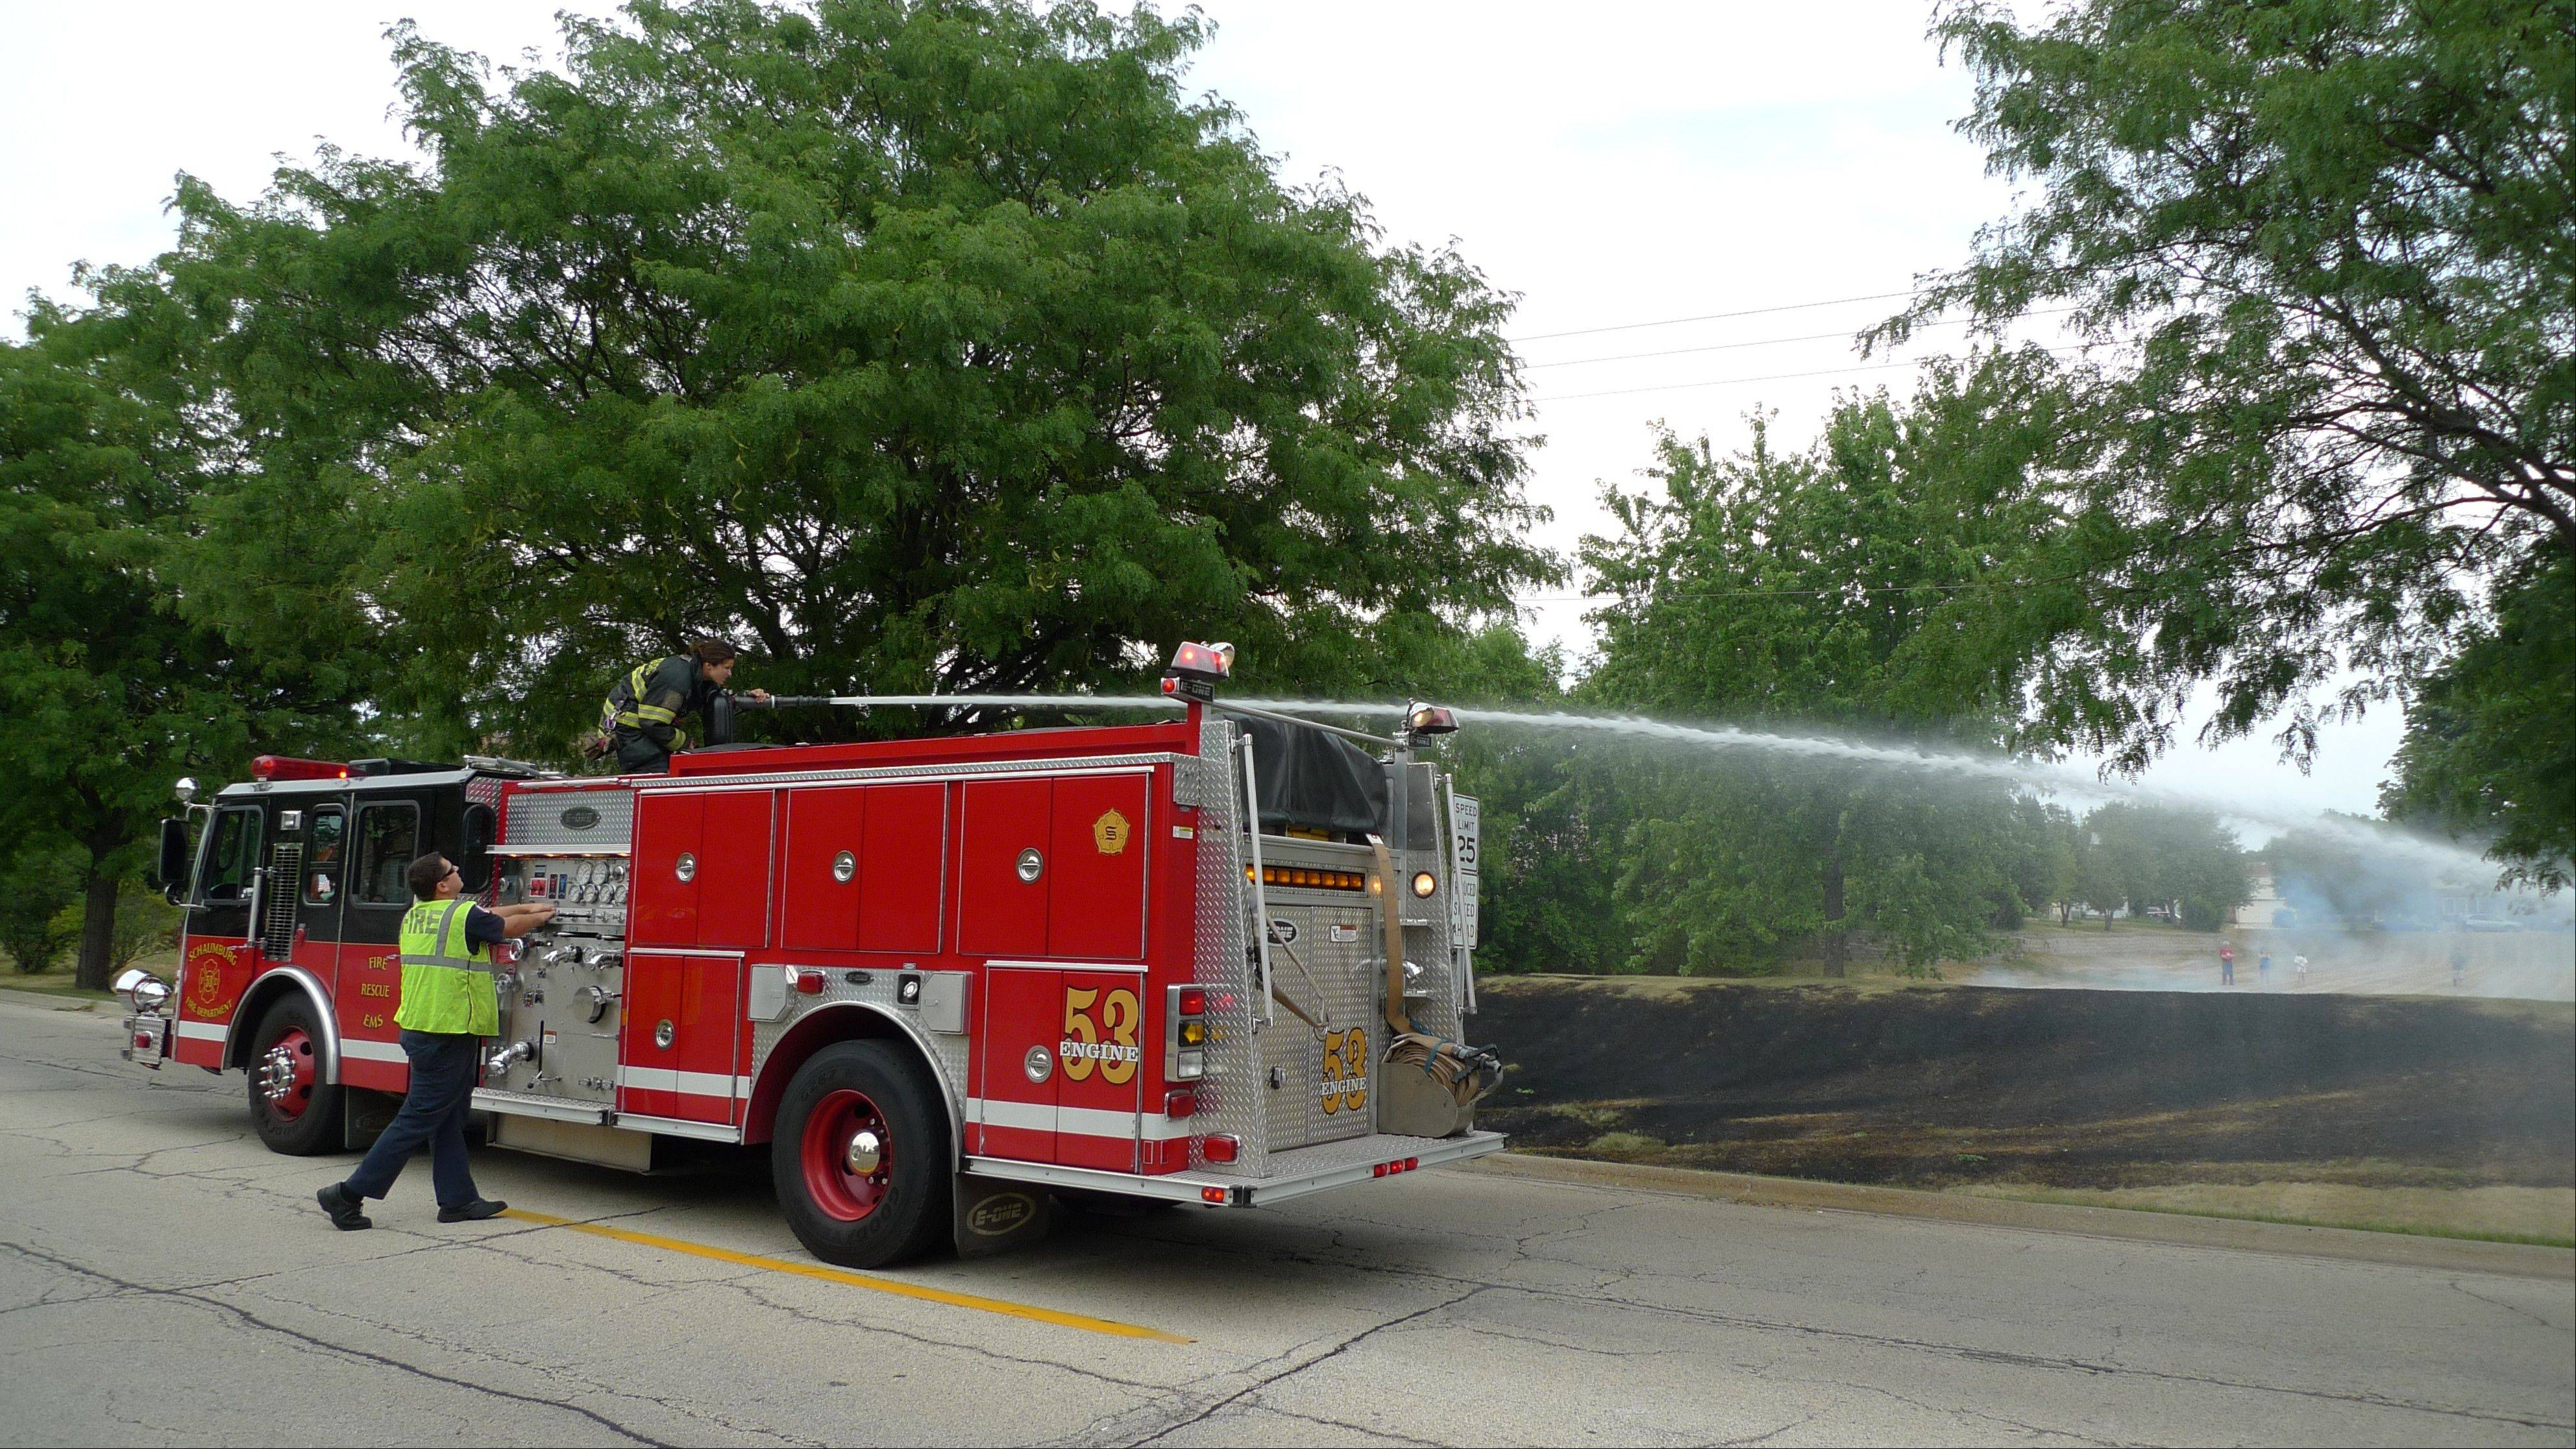 The Hoffman Estates Fire Department has been awarded $164,960 through the Department of Homeland Security�s Assistance to Firefighters grant program to help pay for operations and safety.